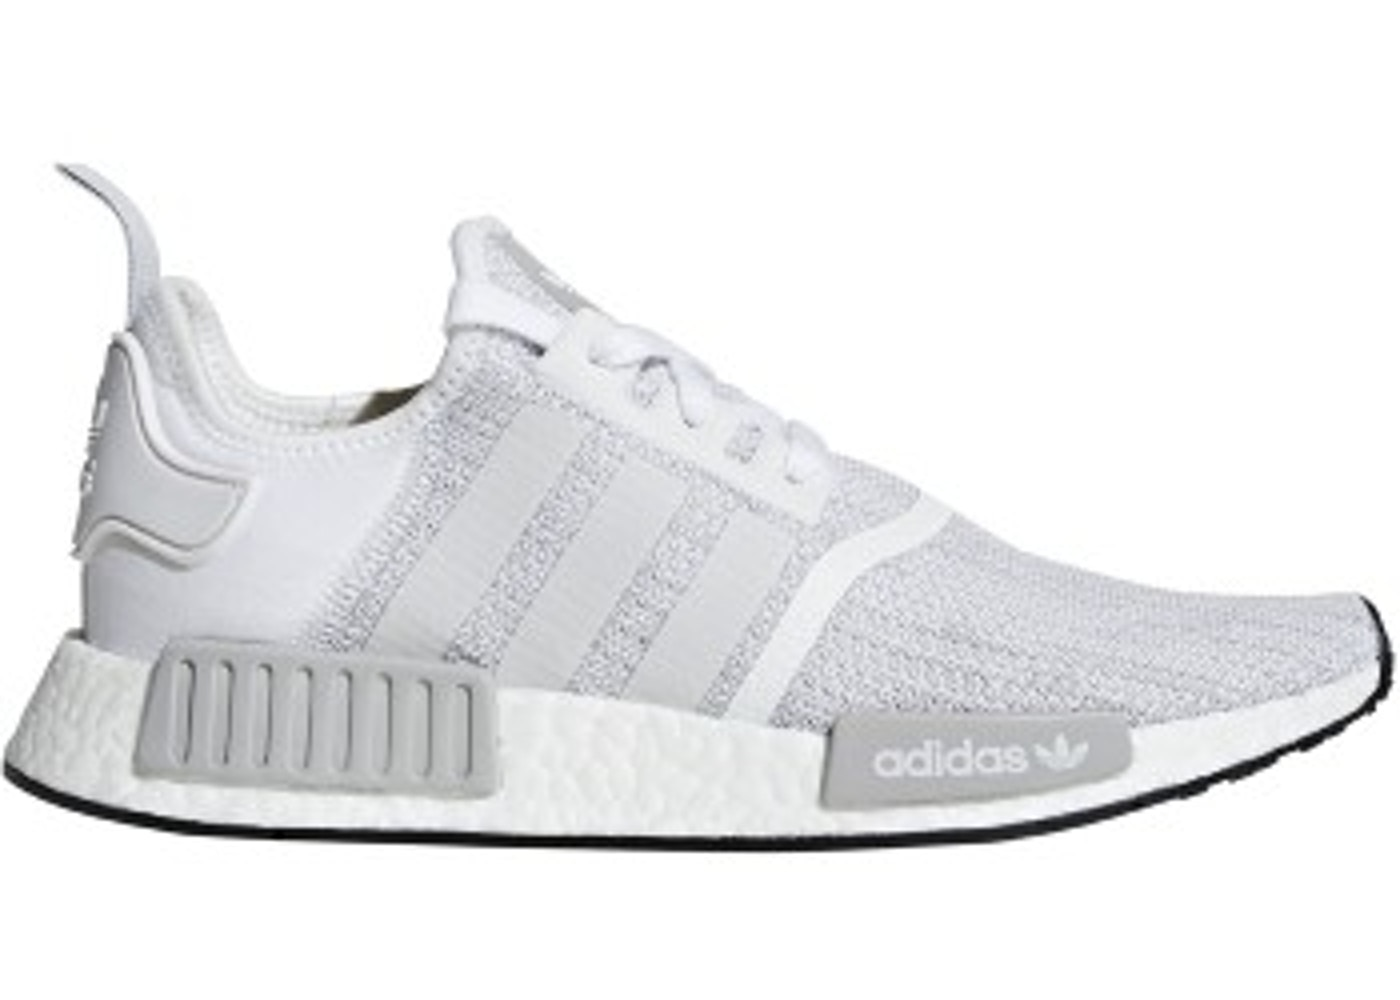 sports shoes 517f4 92b03 adidas NMD R1 Blizzard